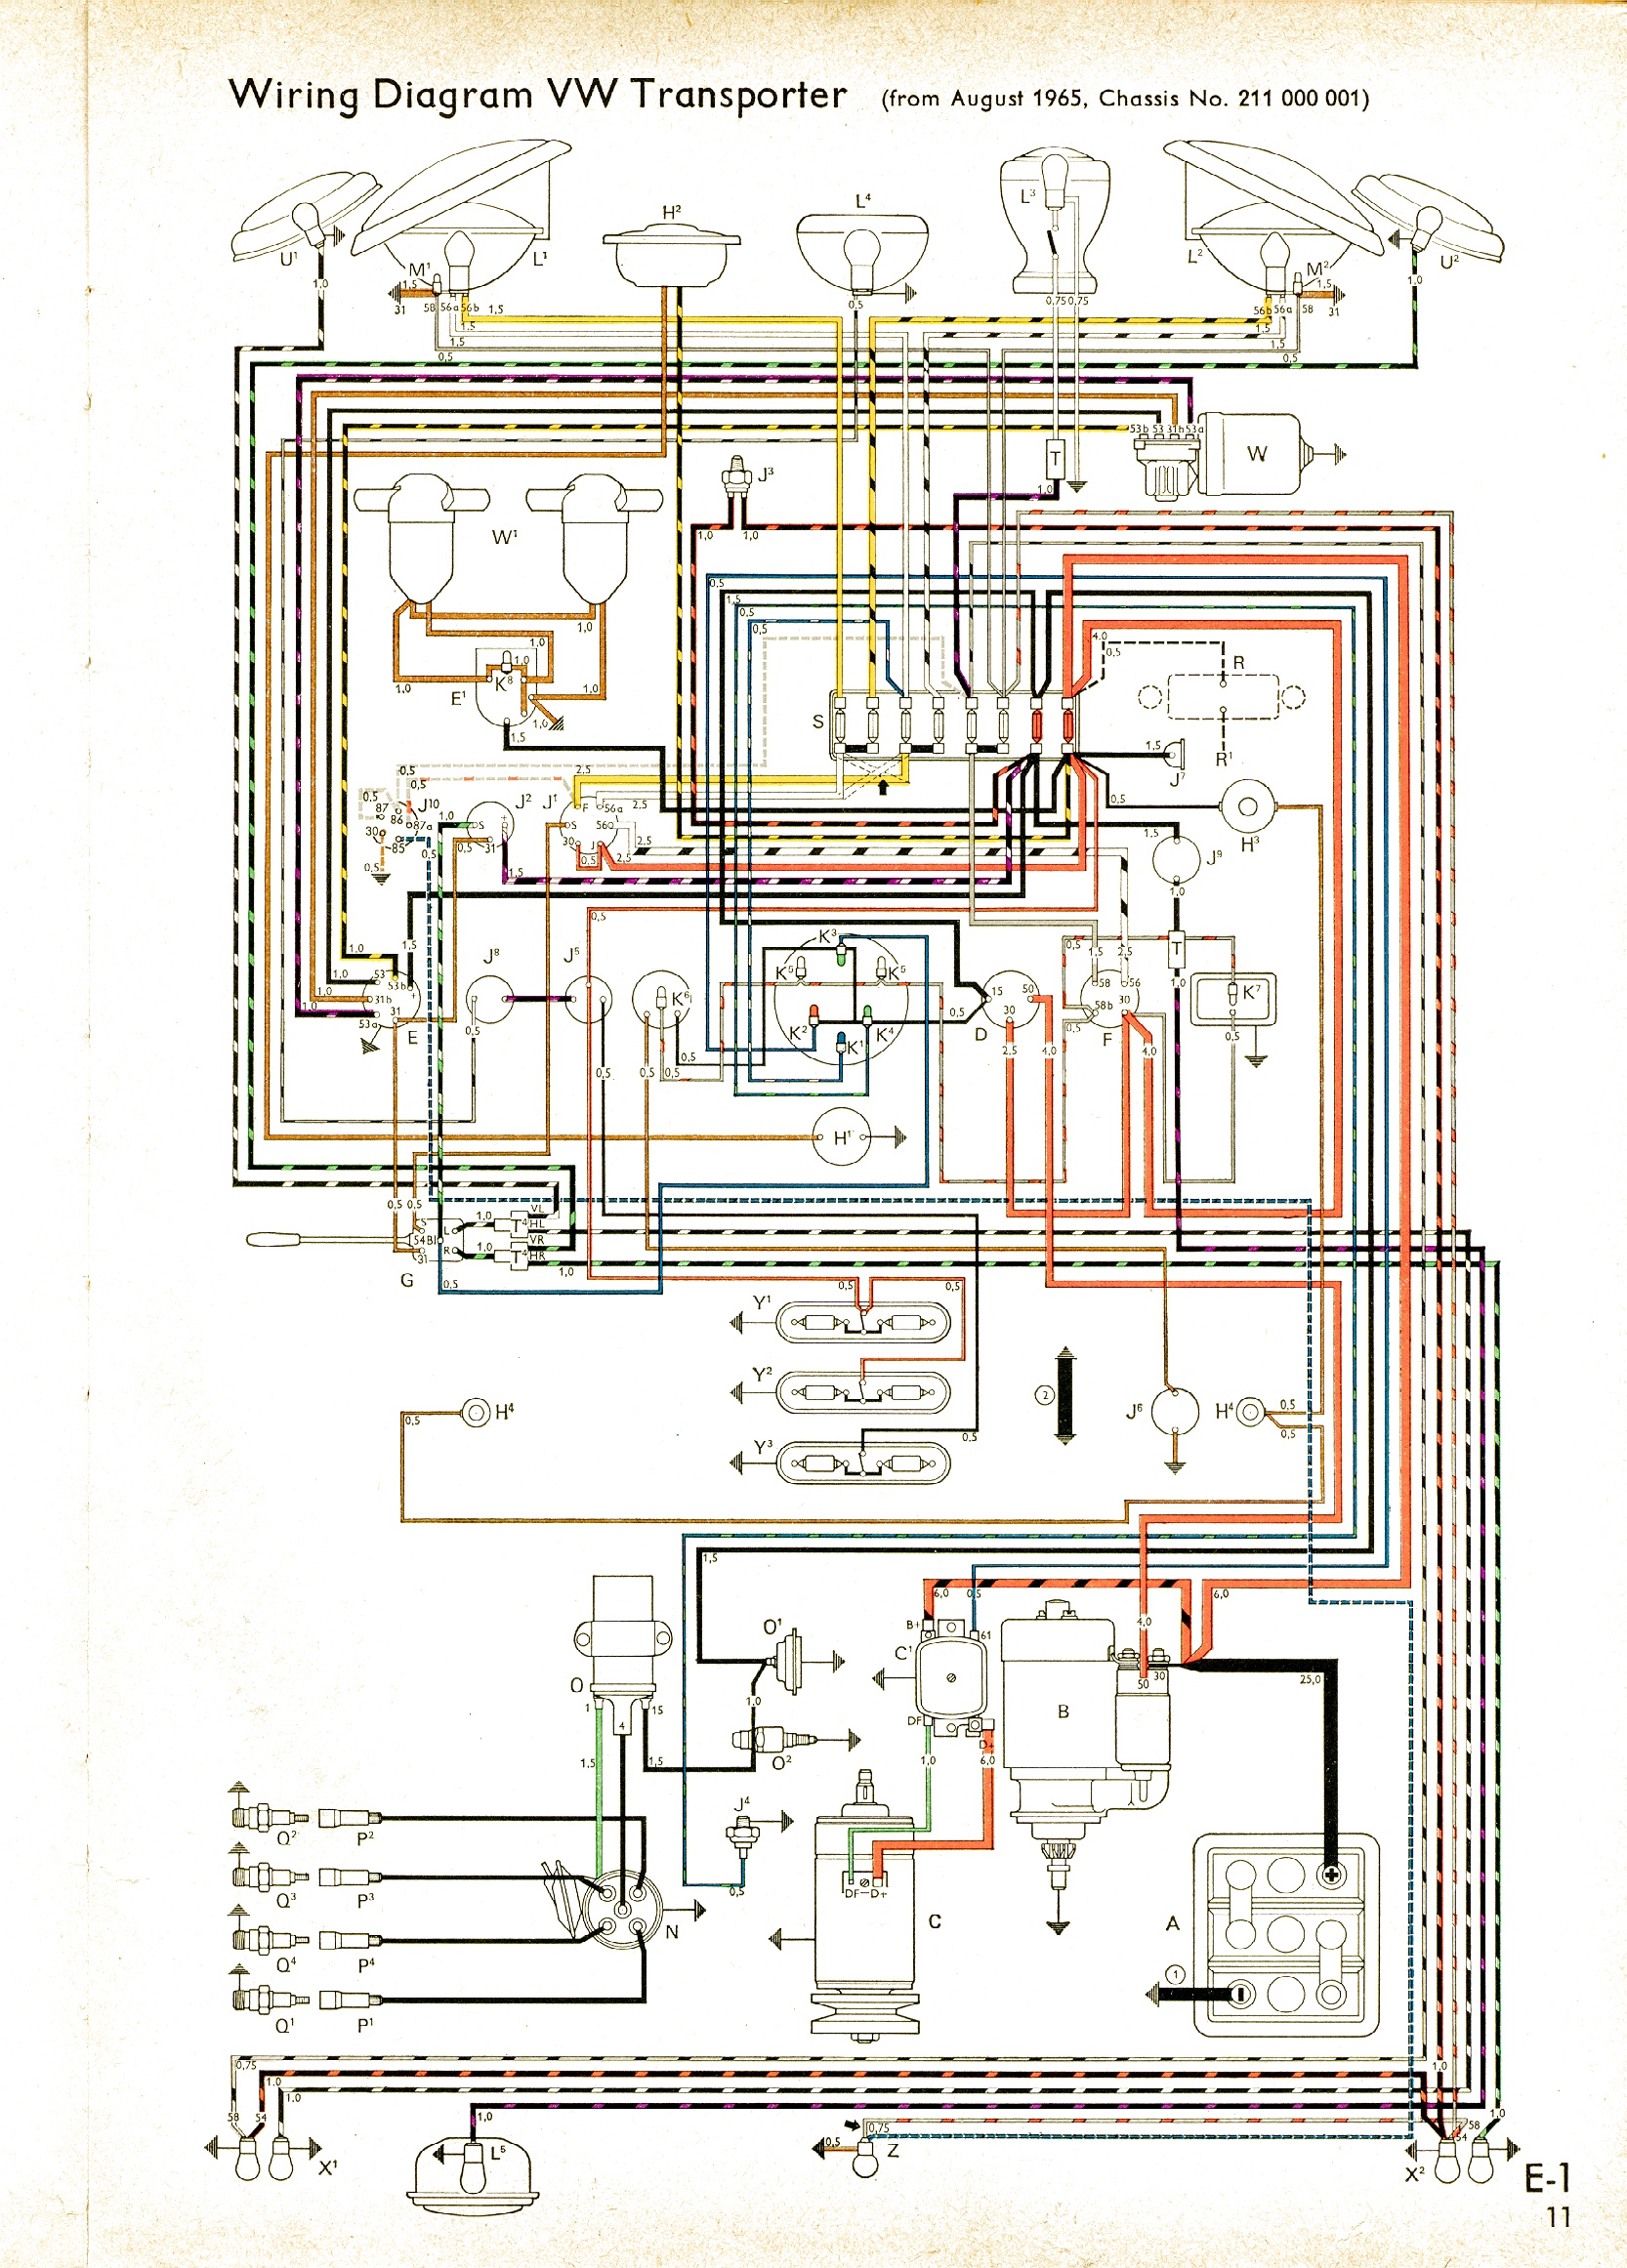 bus 65 bus wiring diagram vw wiring harness diagram \u2022 wiring diagrams j 2000 VW Beetle Alternator Wiring Harness at readyjetset.co